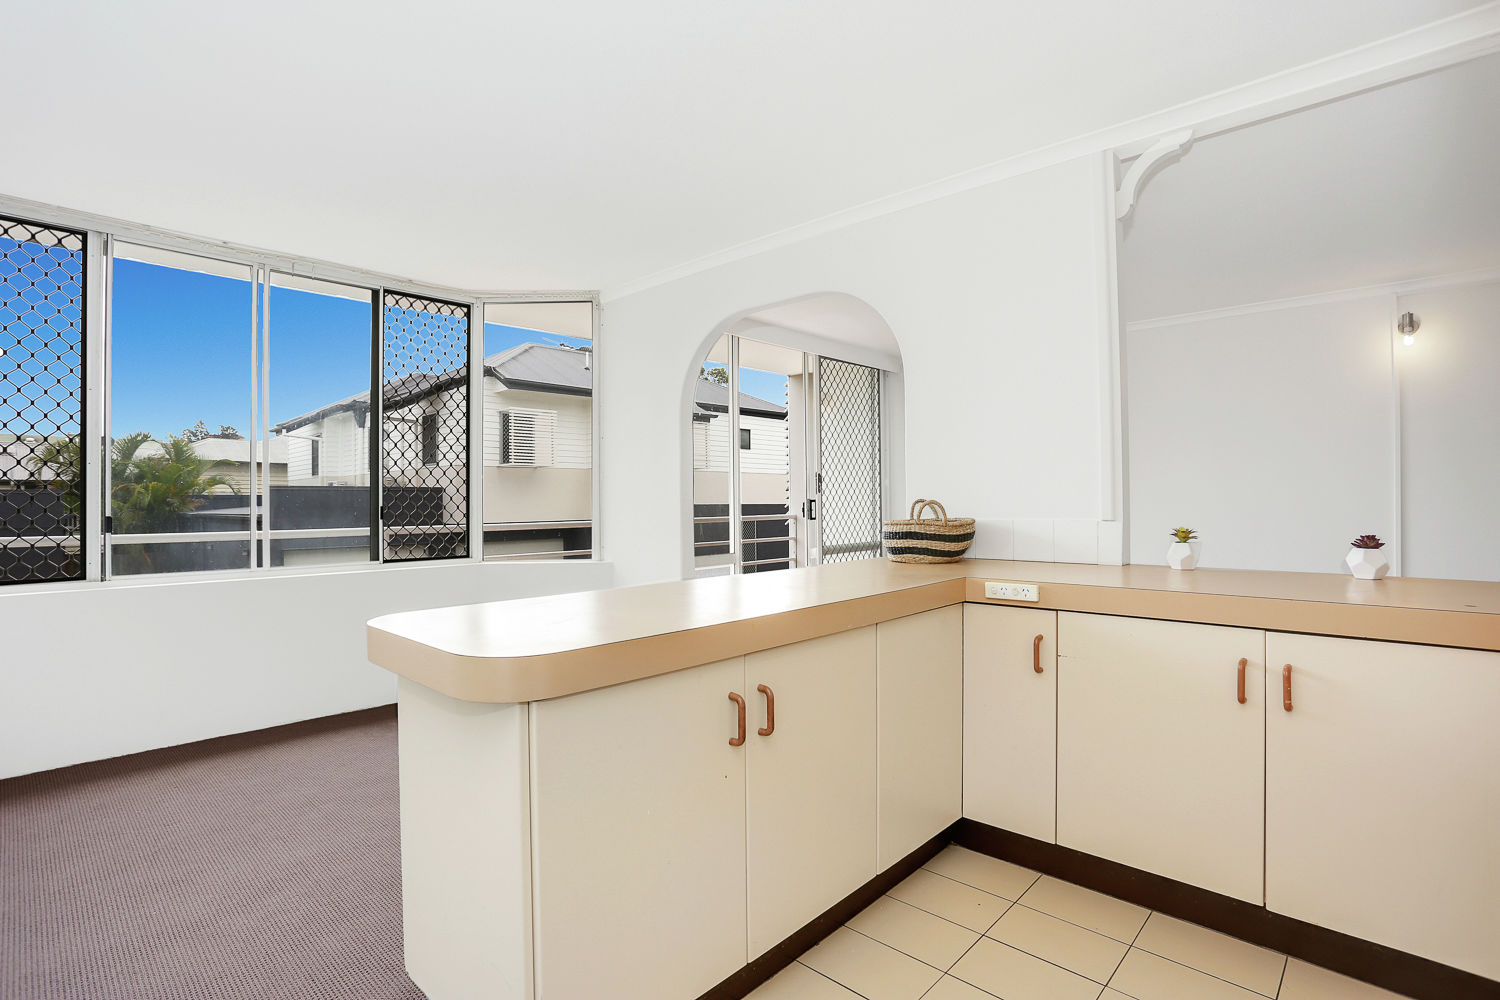 Property in Balmoral - Offers over $275,000